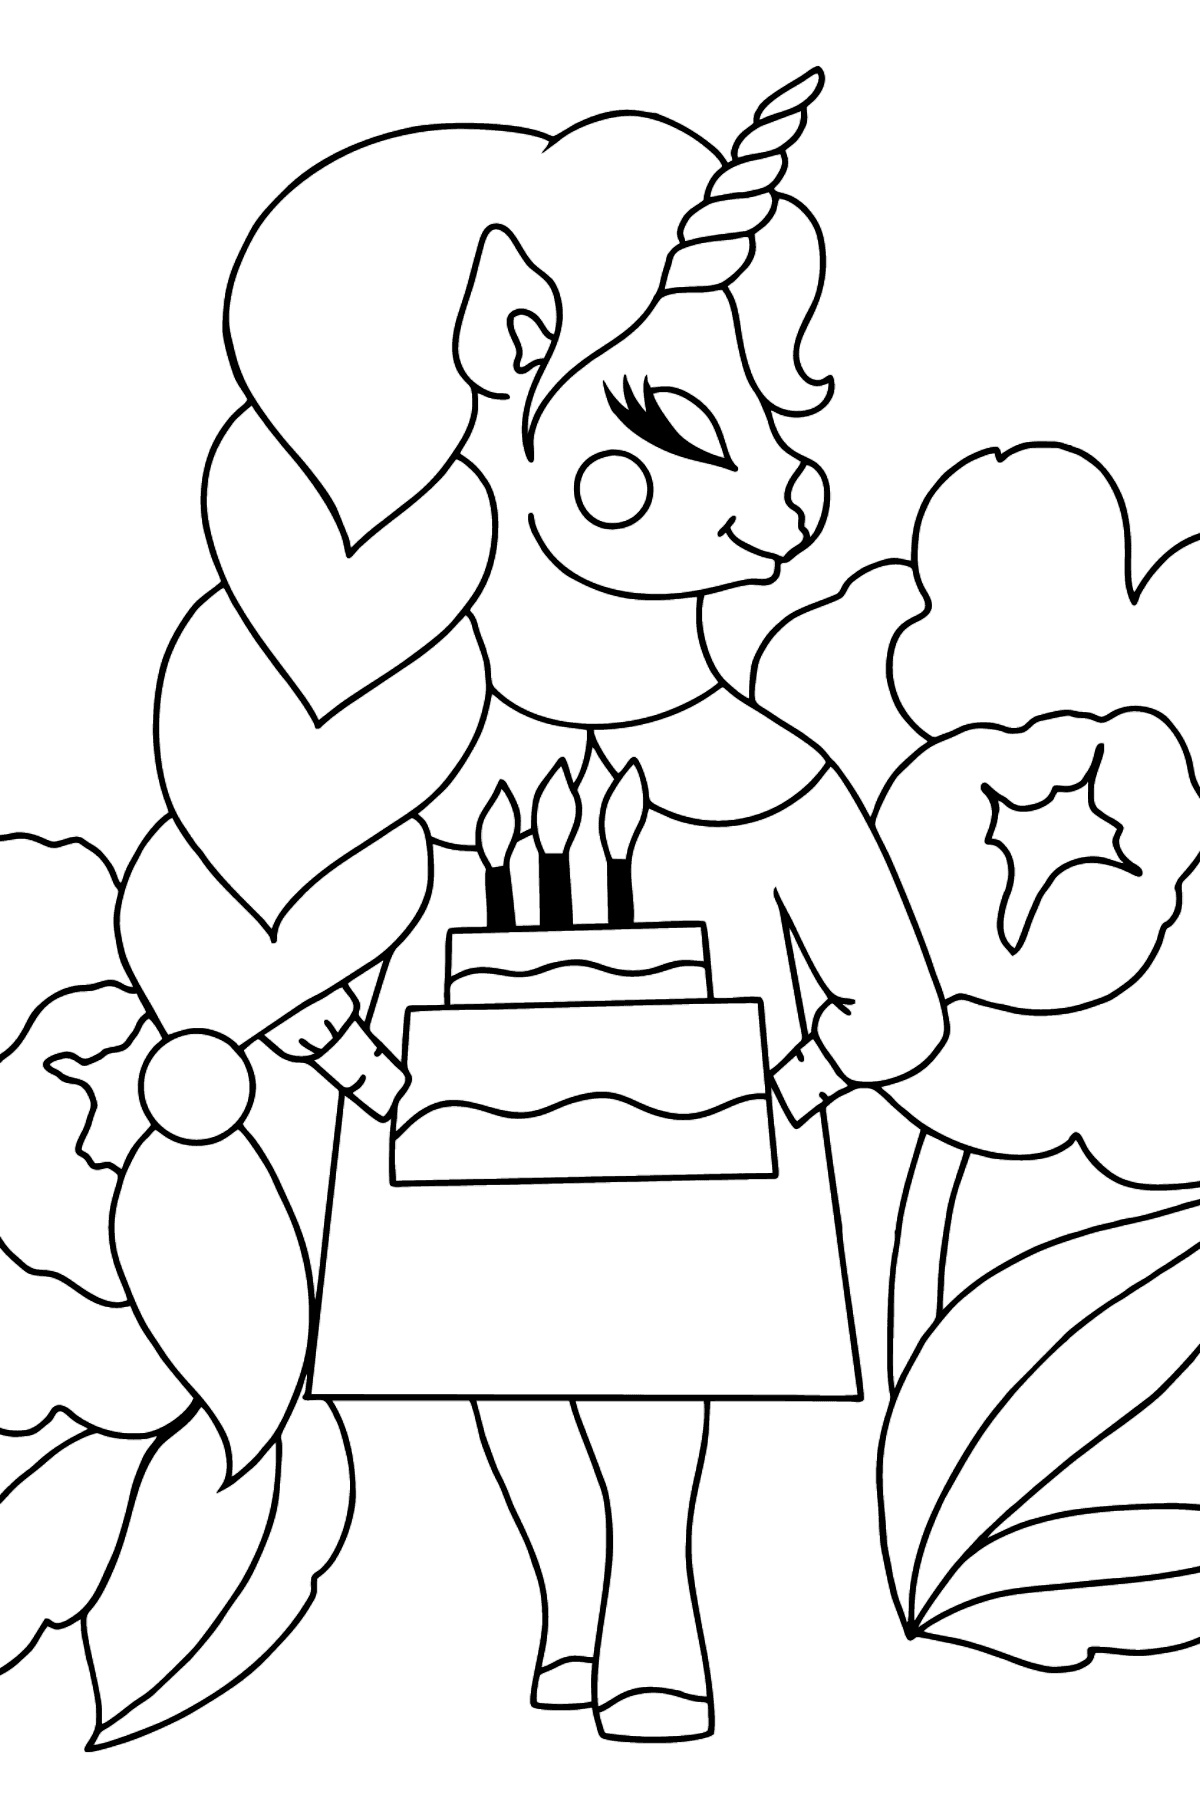 Complex Coloring Page - A Unicorn with a Cake - Coloring Pages for Kids